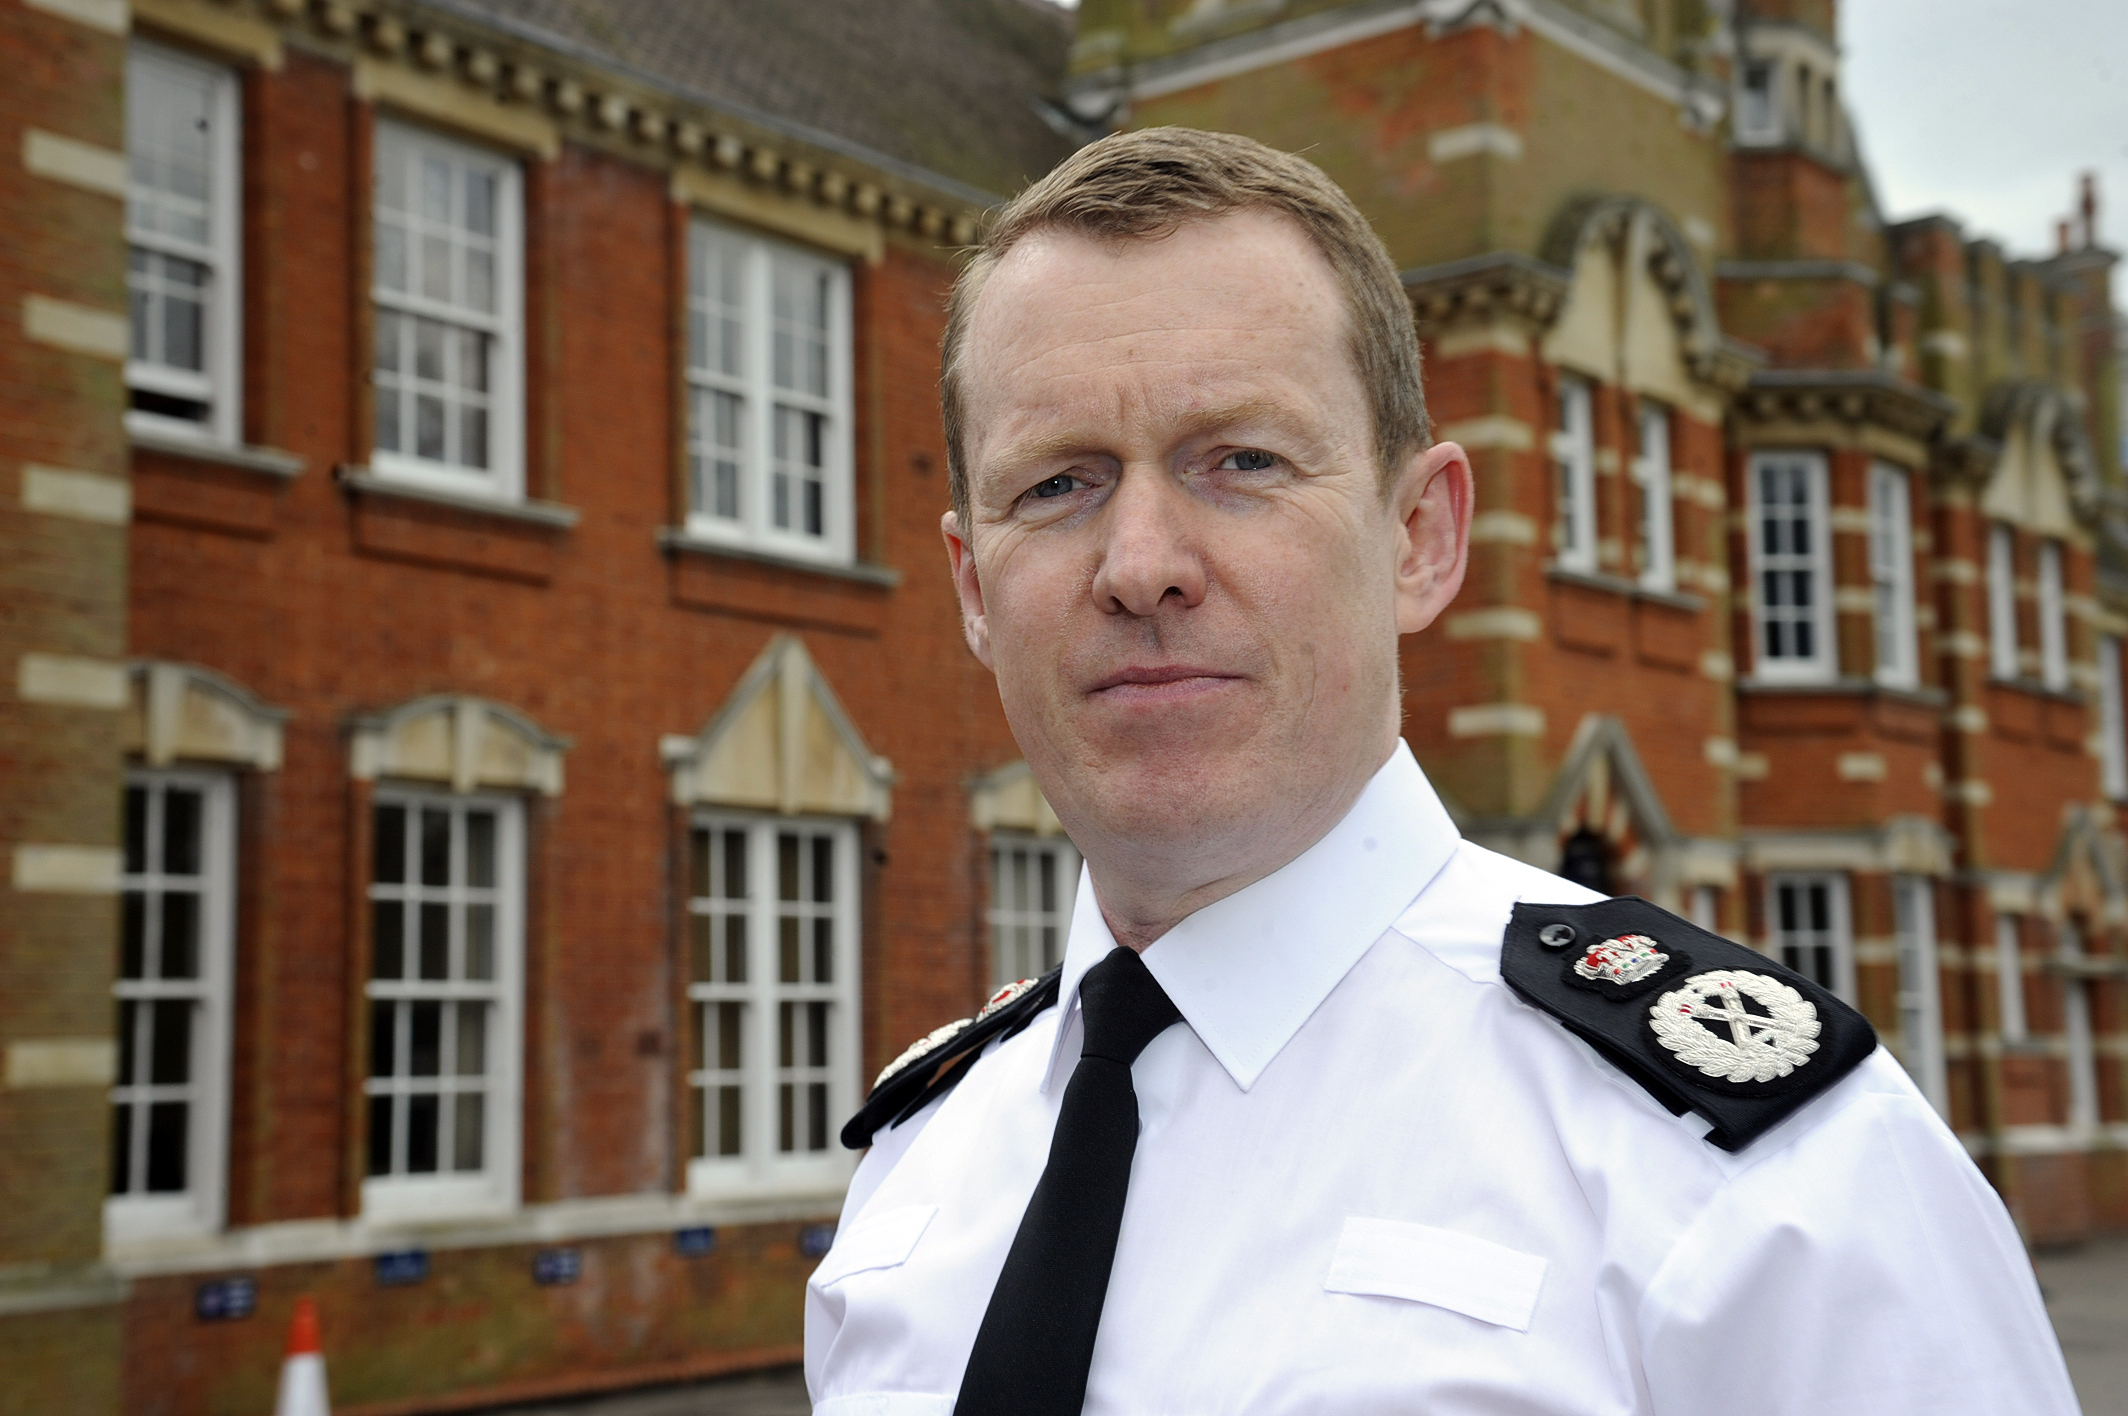 500 police officers will be moved back into the community